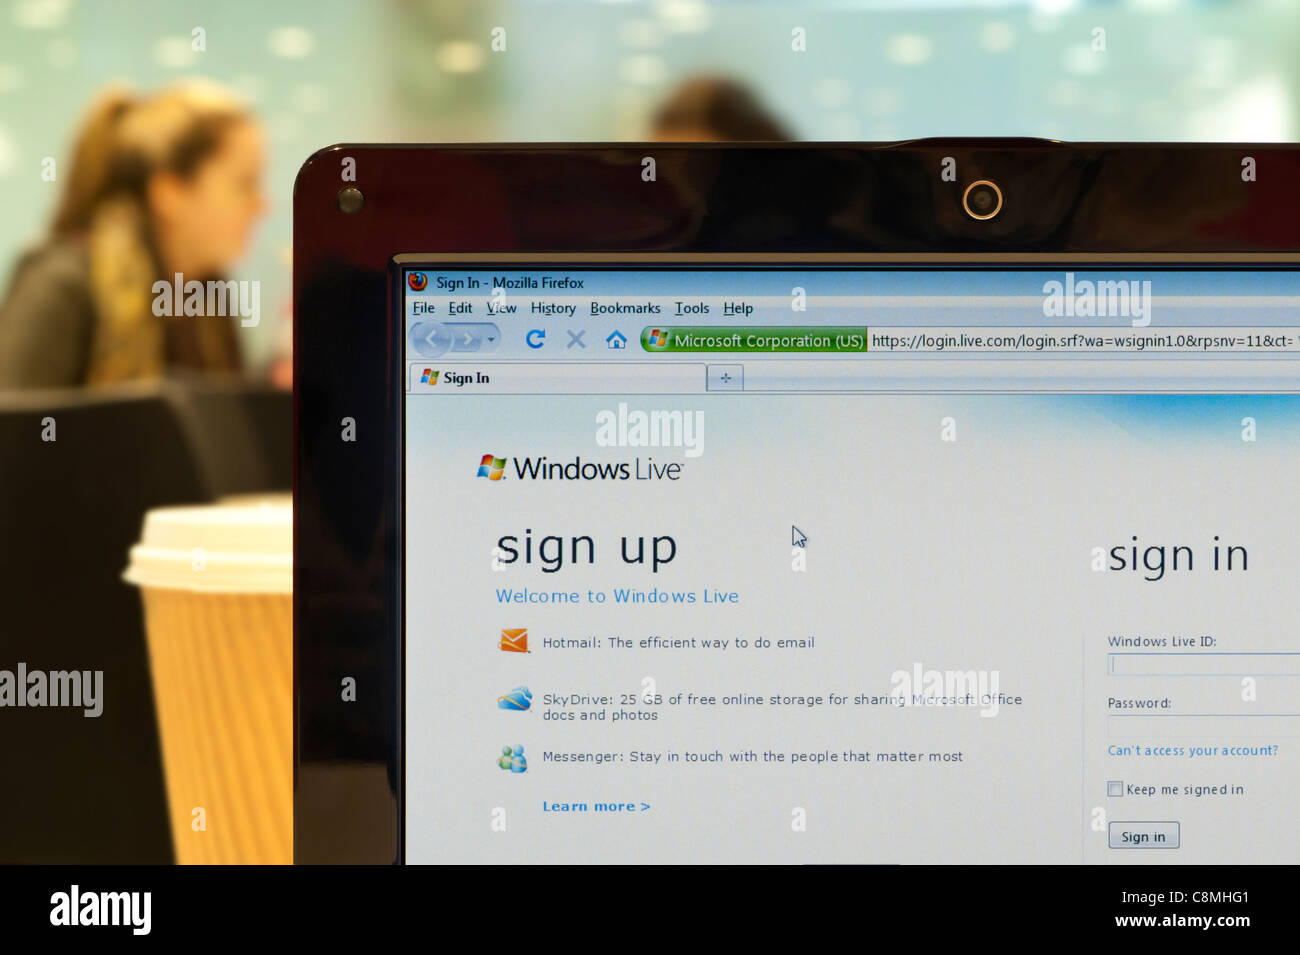 The Windows Live website shot in a coffee shop environment (Editorial use only: print, TV, e-book and editorial - Stock Image